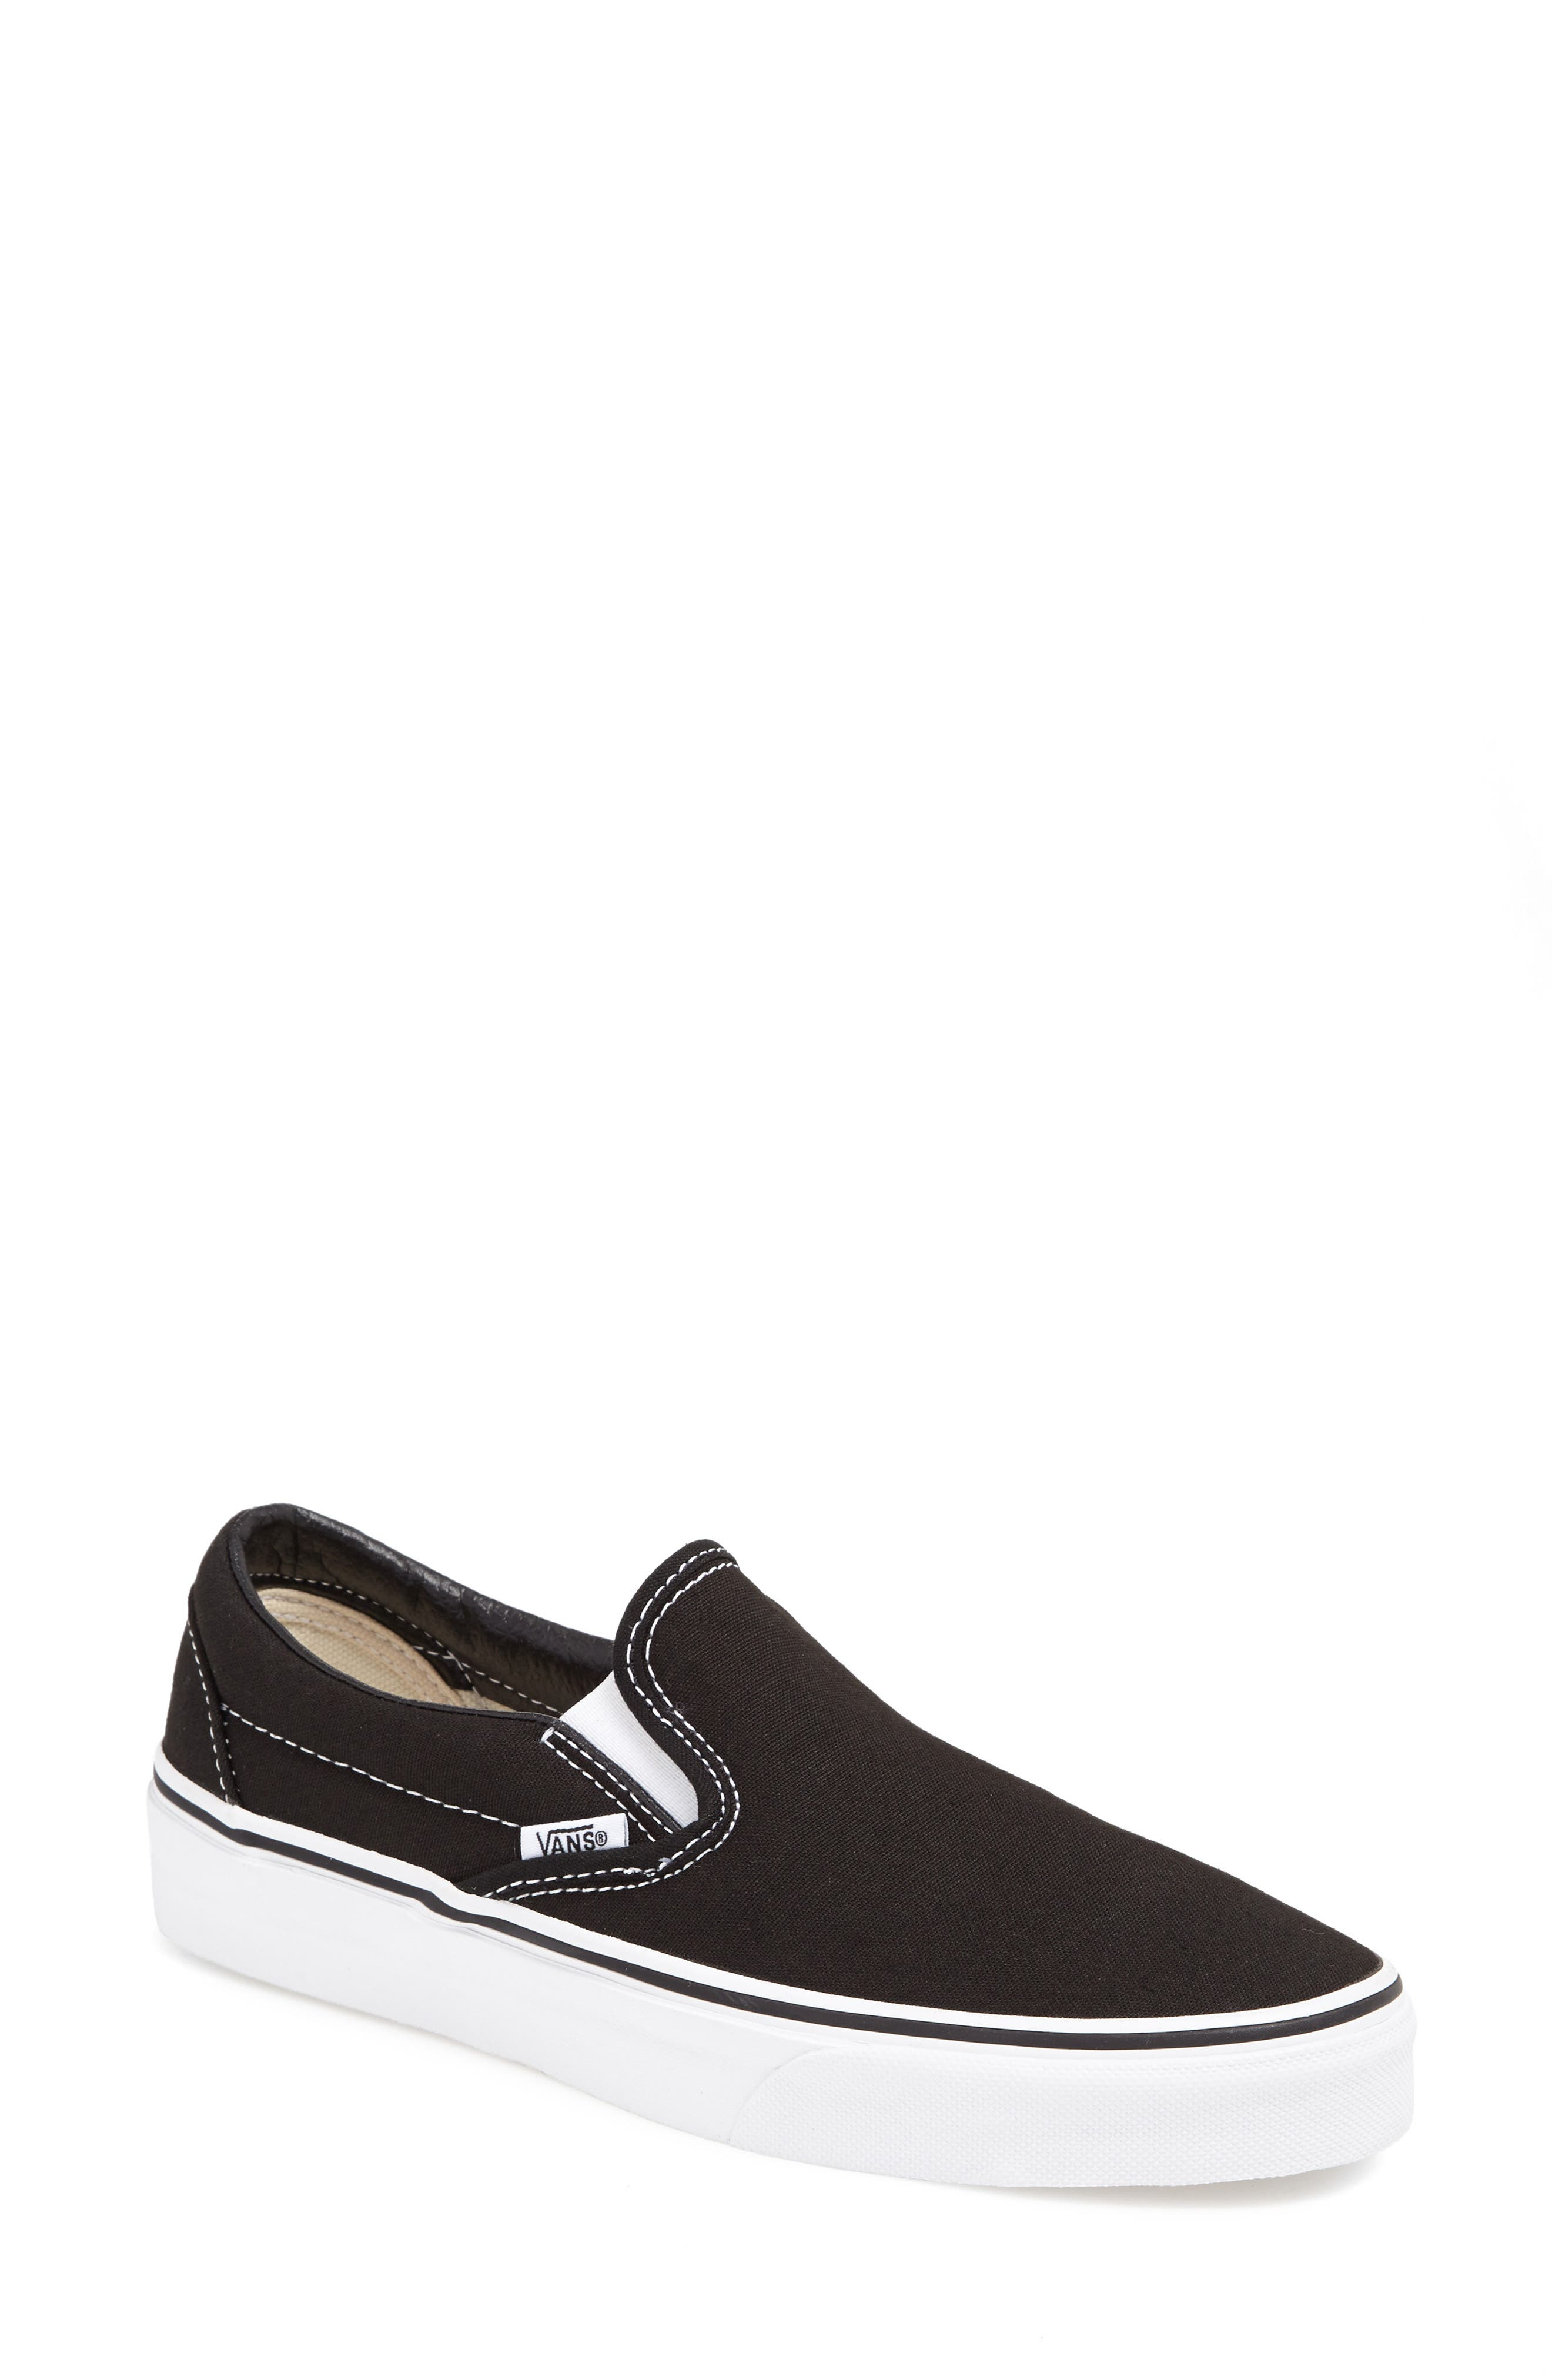 Classic Slip-On Sneaker,                             Main thumbnail 1, color,                             BLACK